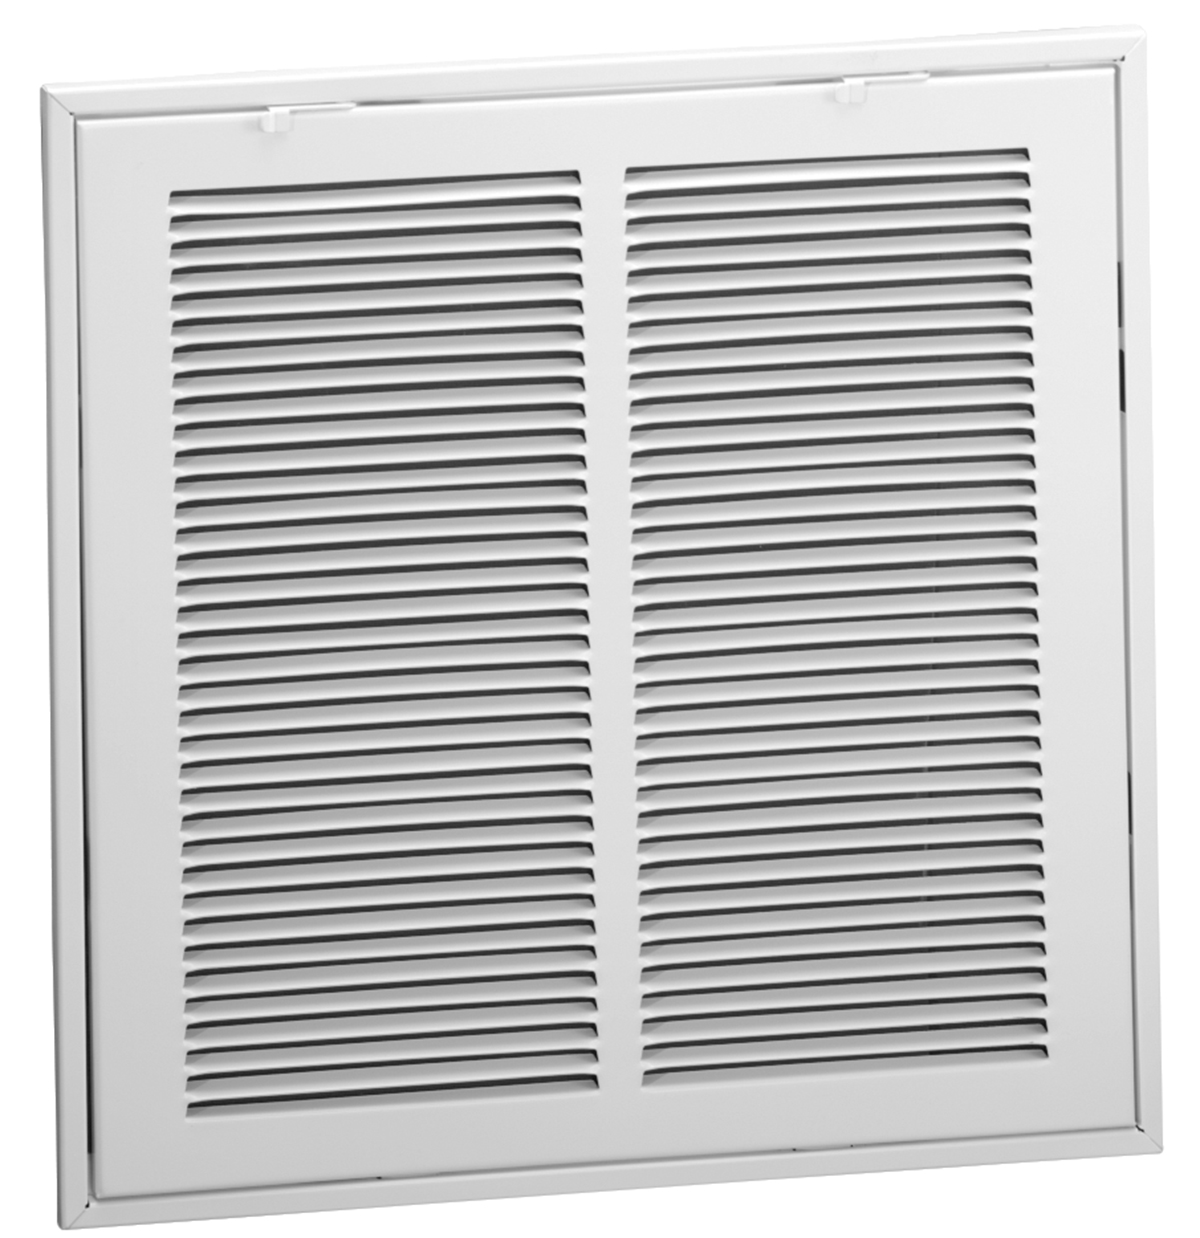 Air Conditioner Filter Grill Air Free Engine Image For User Manual  #3C3C3C